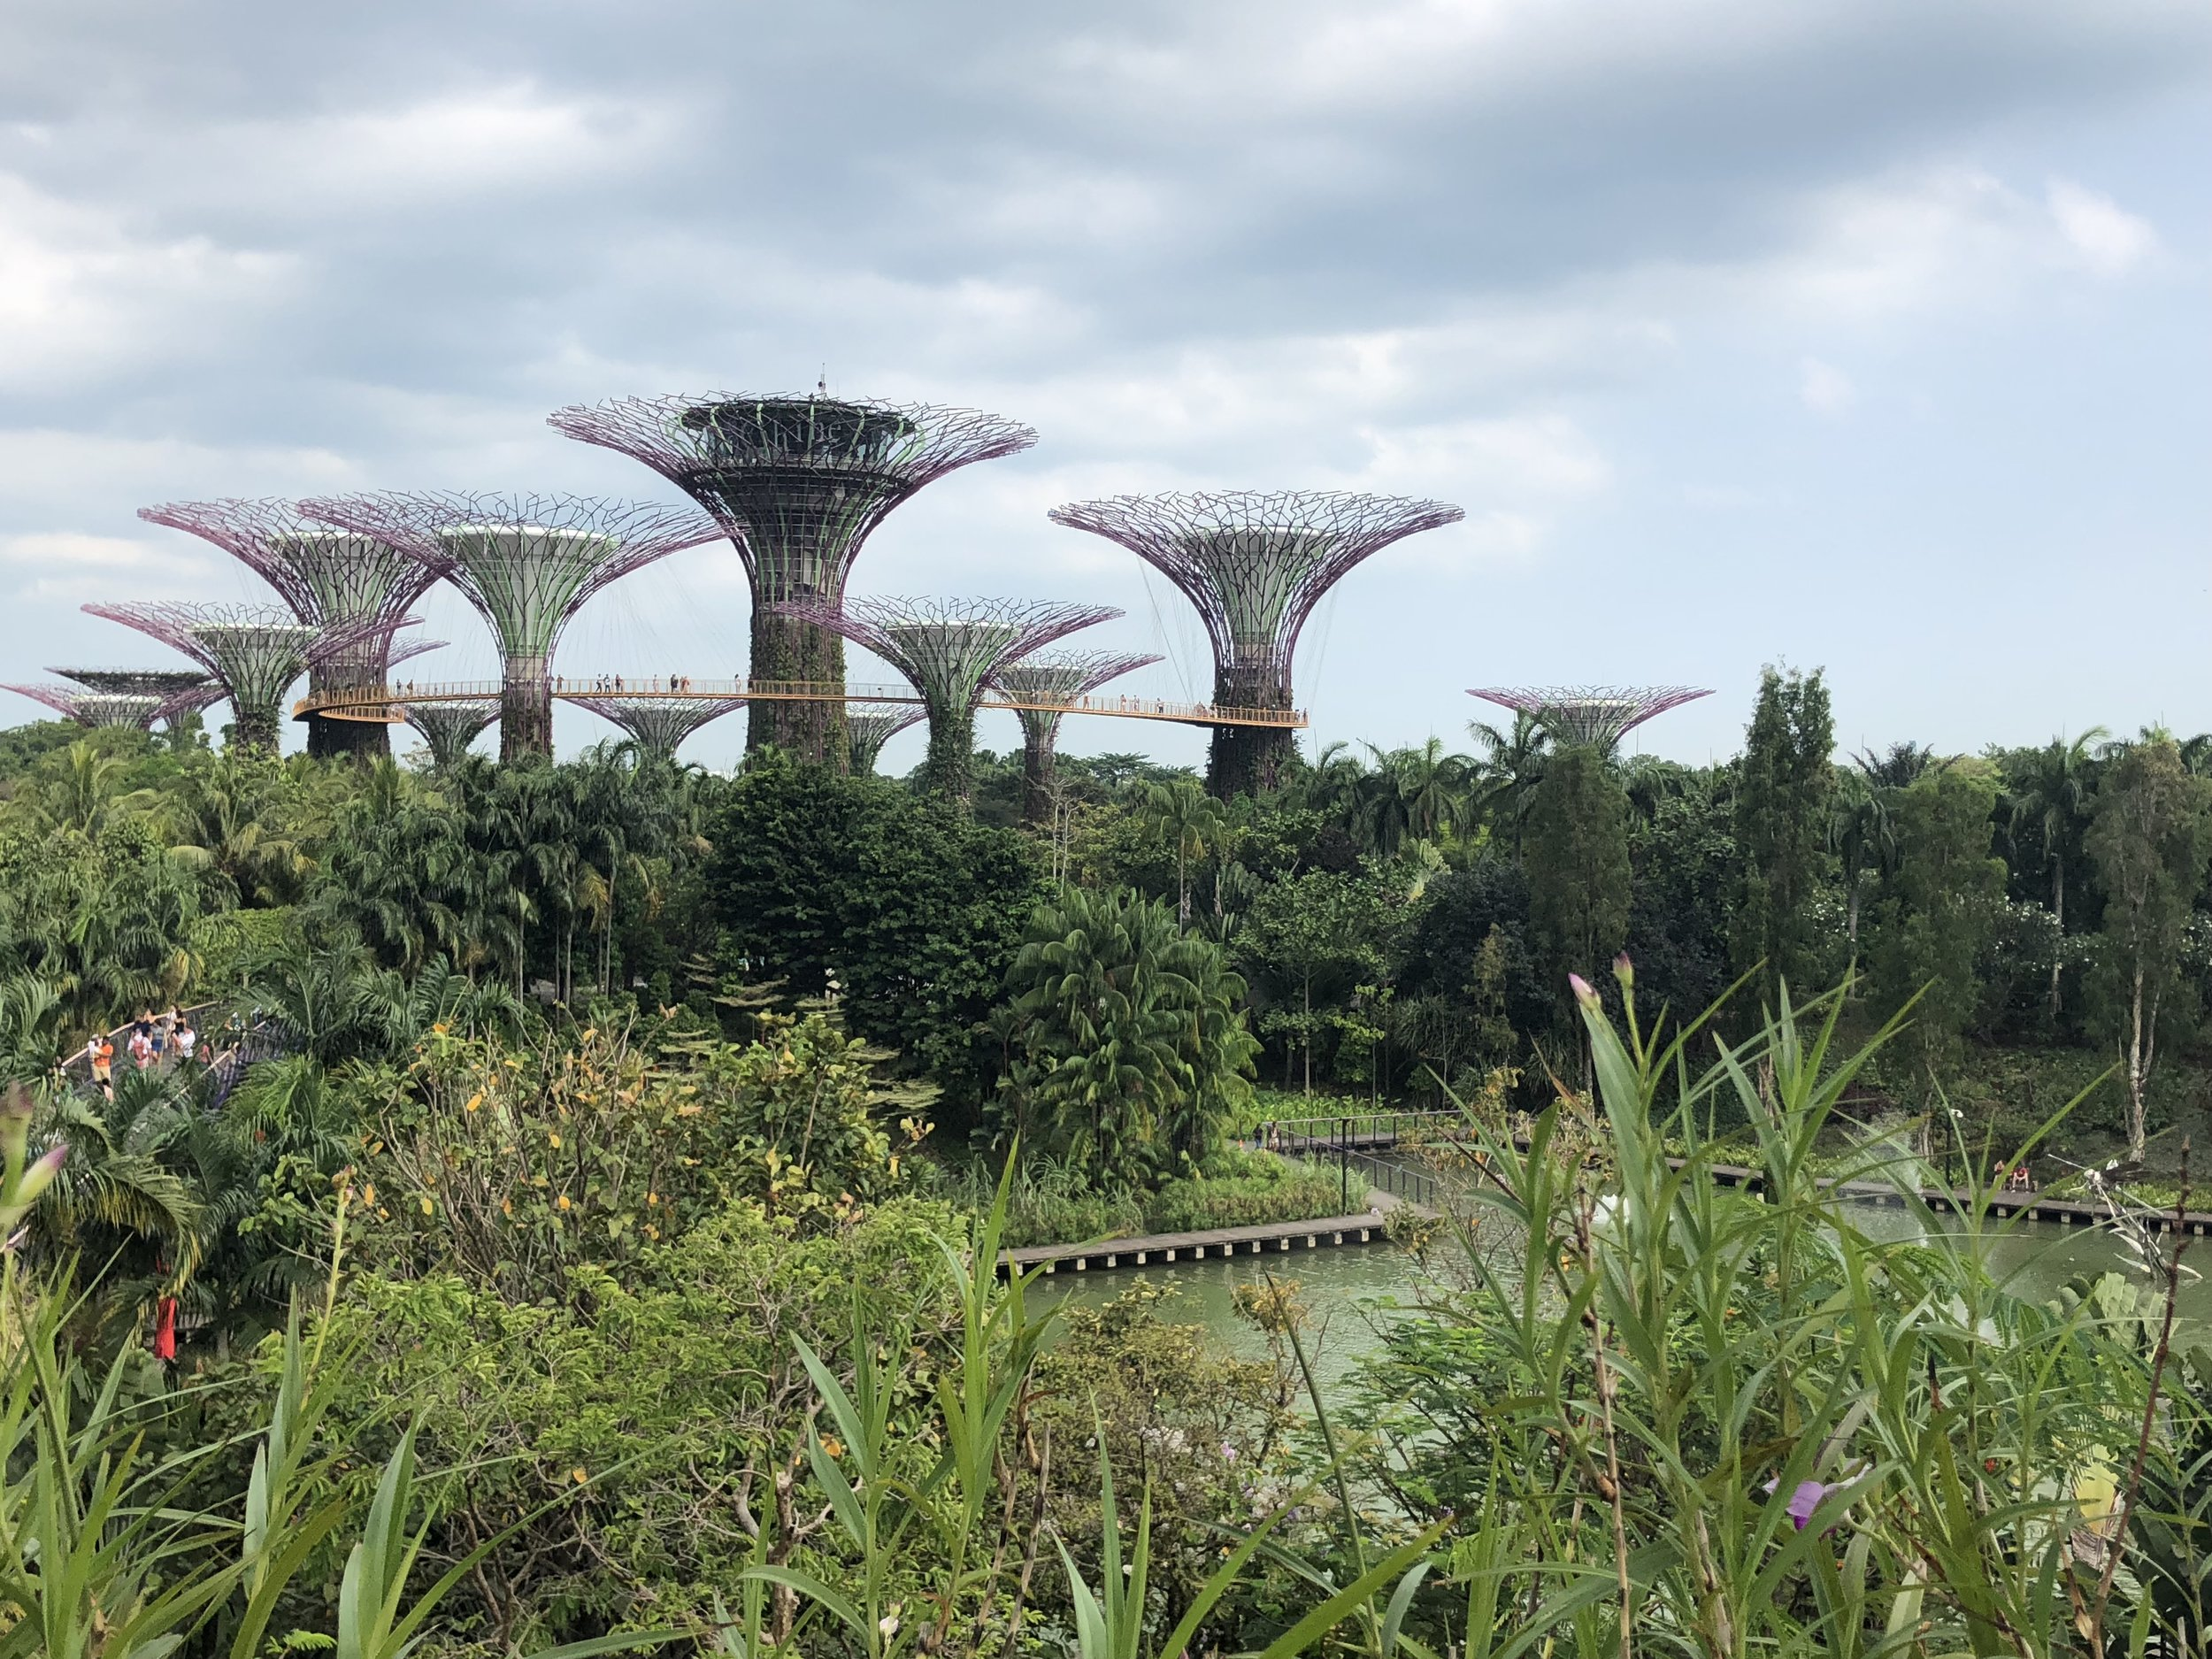 A look at the supertrees at Gardens by the Bay from afar. This is something that I would see in a fantasy movie…Avatar, anyone?